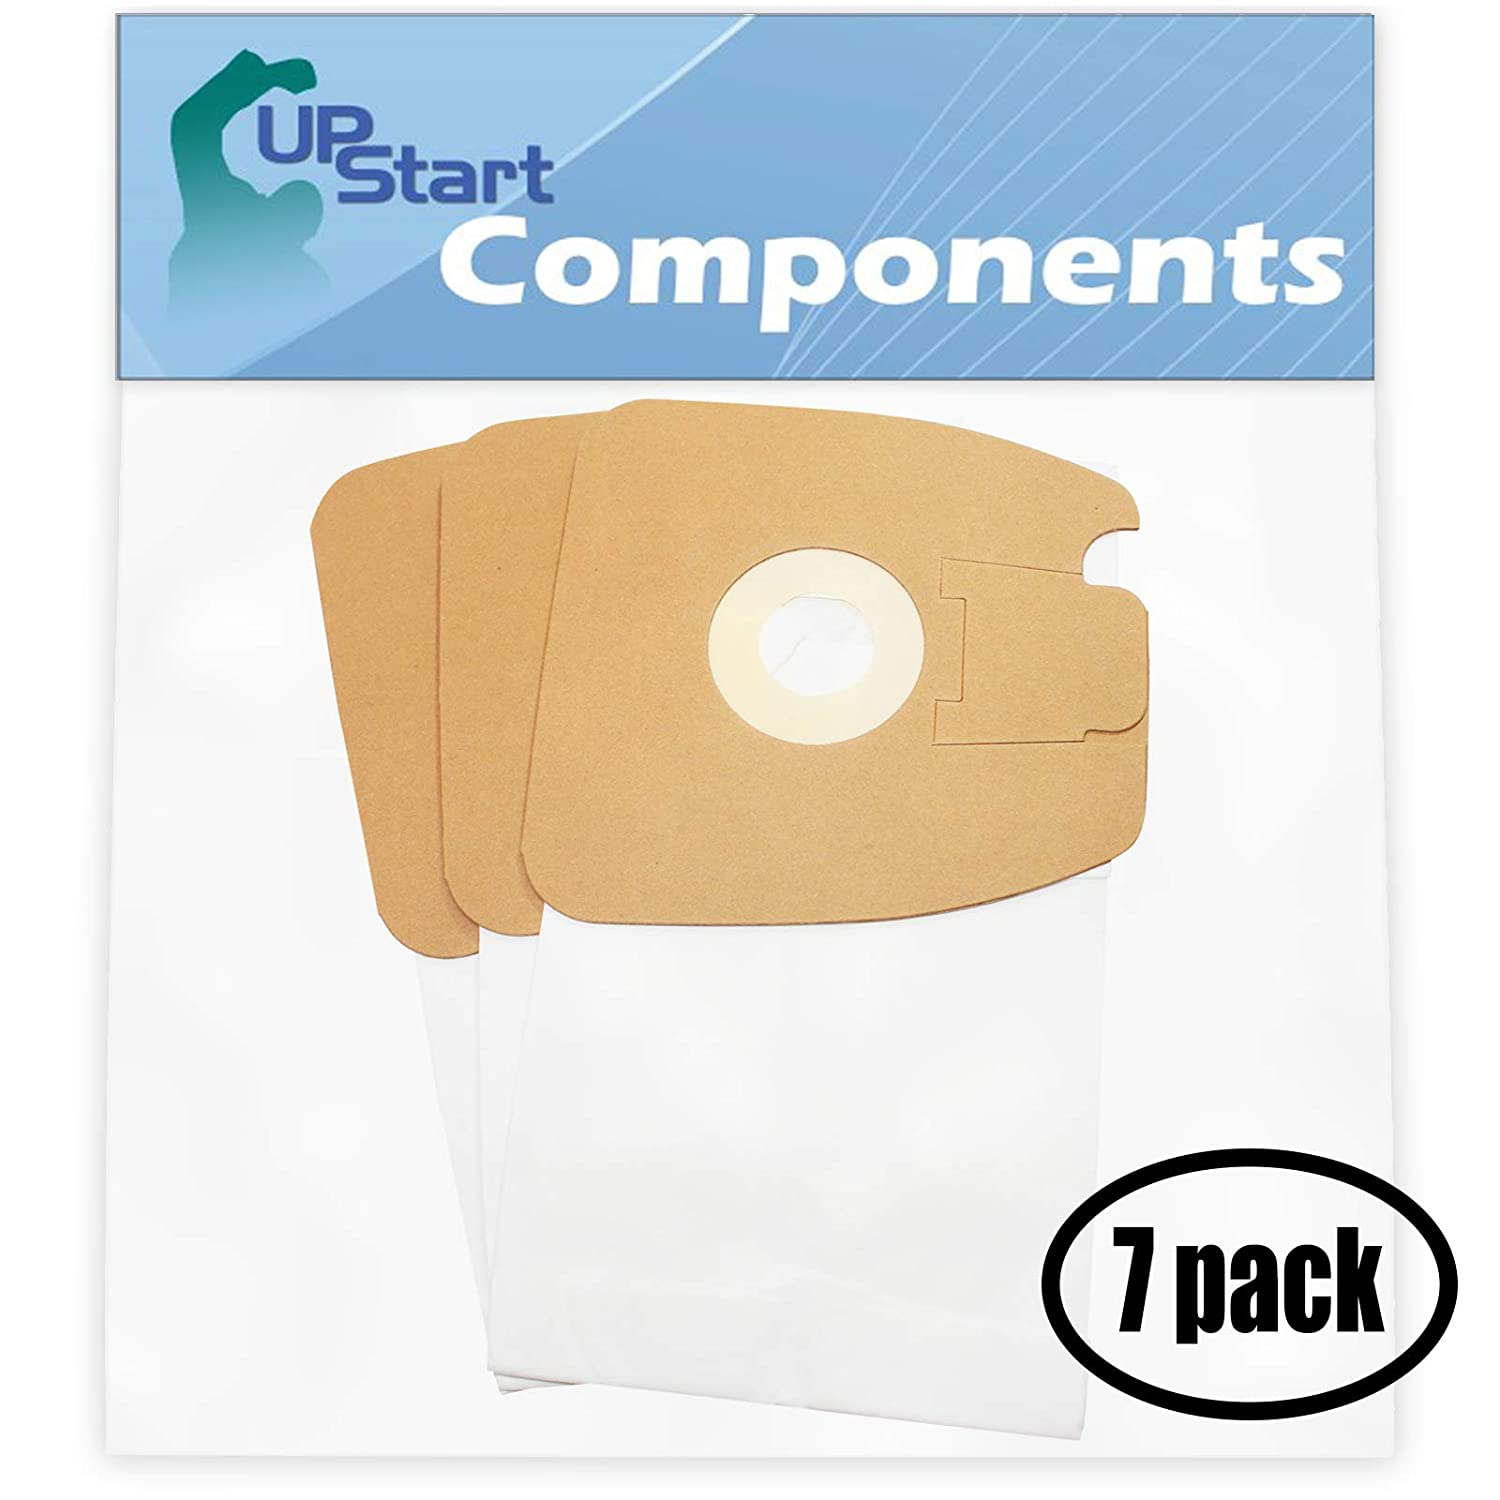 21 Replacement MM Bags 60295C for Eureka, Sanitaire - Compatible with Eureka 3670G, Sanitaire SC3683A, Eureka Mighty Mite Pet Lover 3684F, Eureka Mighty Mite 3670G, Eureka 3684F, Sanitaire SC3683, Sanitaire S3681, Eureka Style MM, Eureka 3670A, Eureka 3684B, Eureka Mighty Mite 3684F